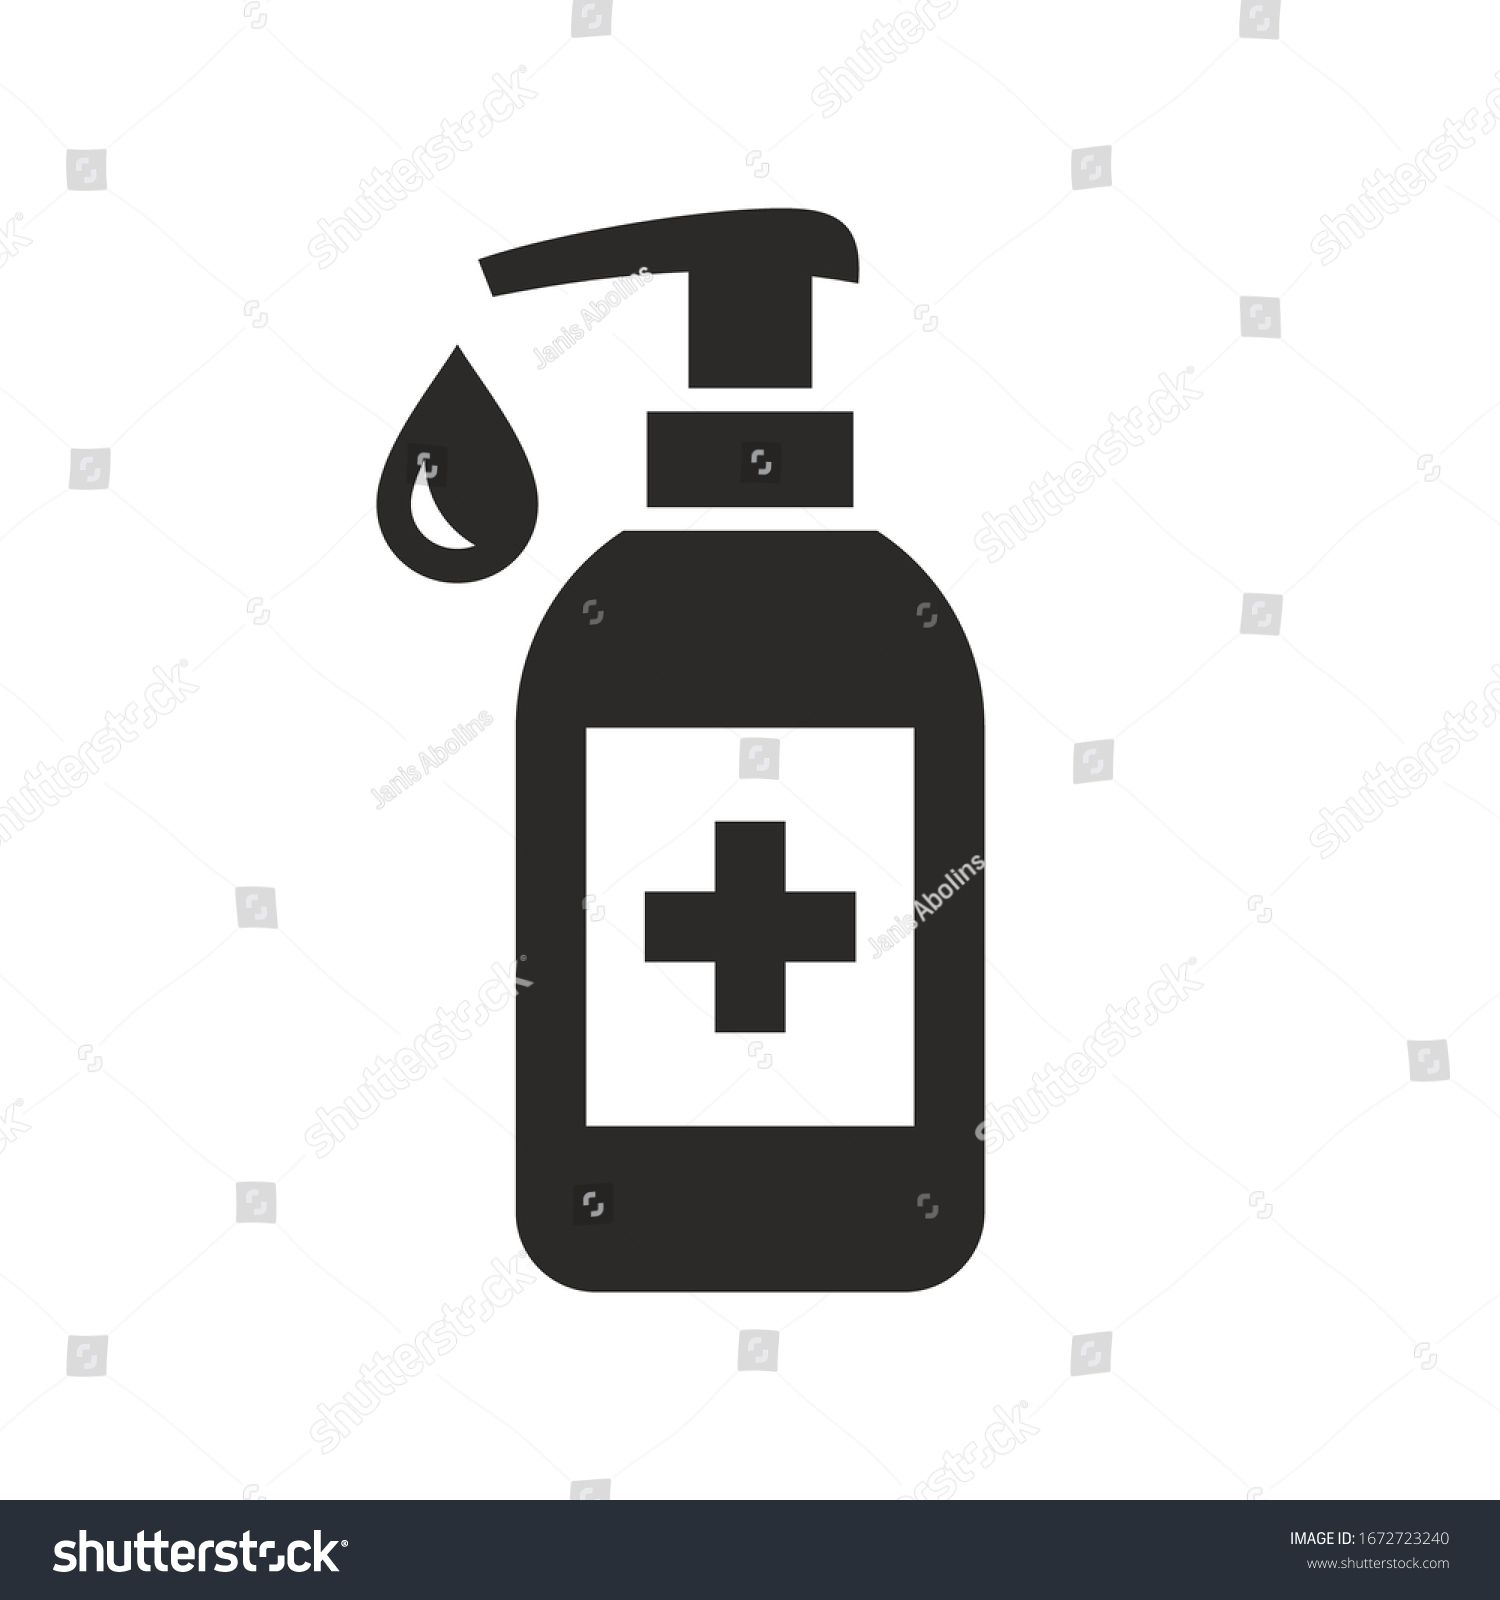 Hand Sanitizer Icon Vector Icon Isolated On White Background Ad Paid Icon Sanitizer Hand Vector Hand Sanitizer Vector Icons Icon